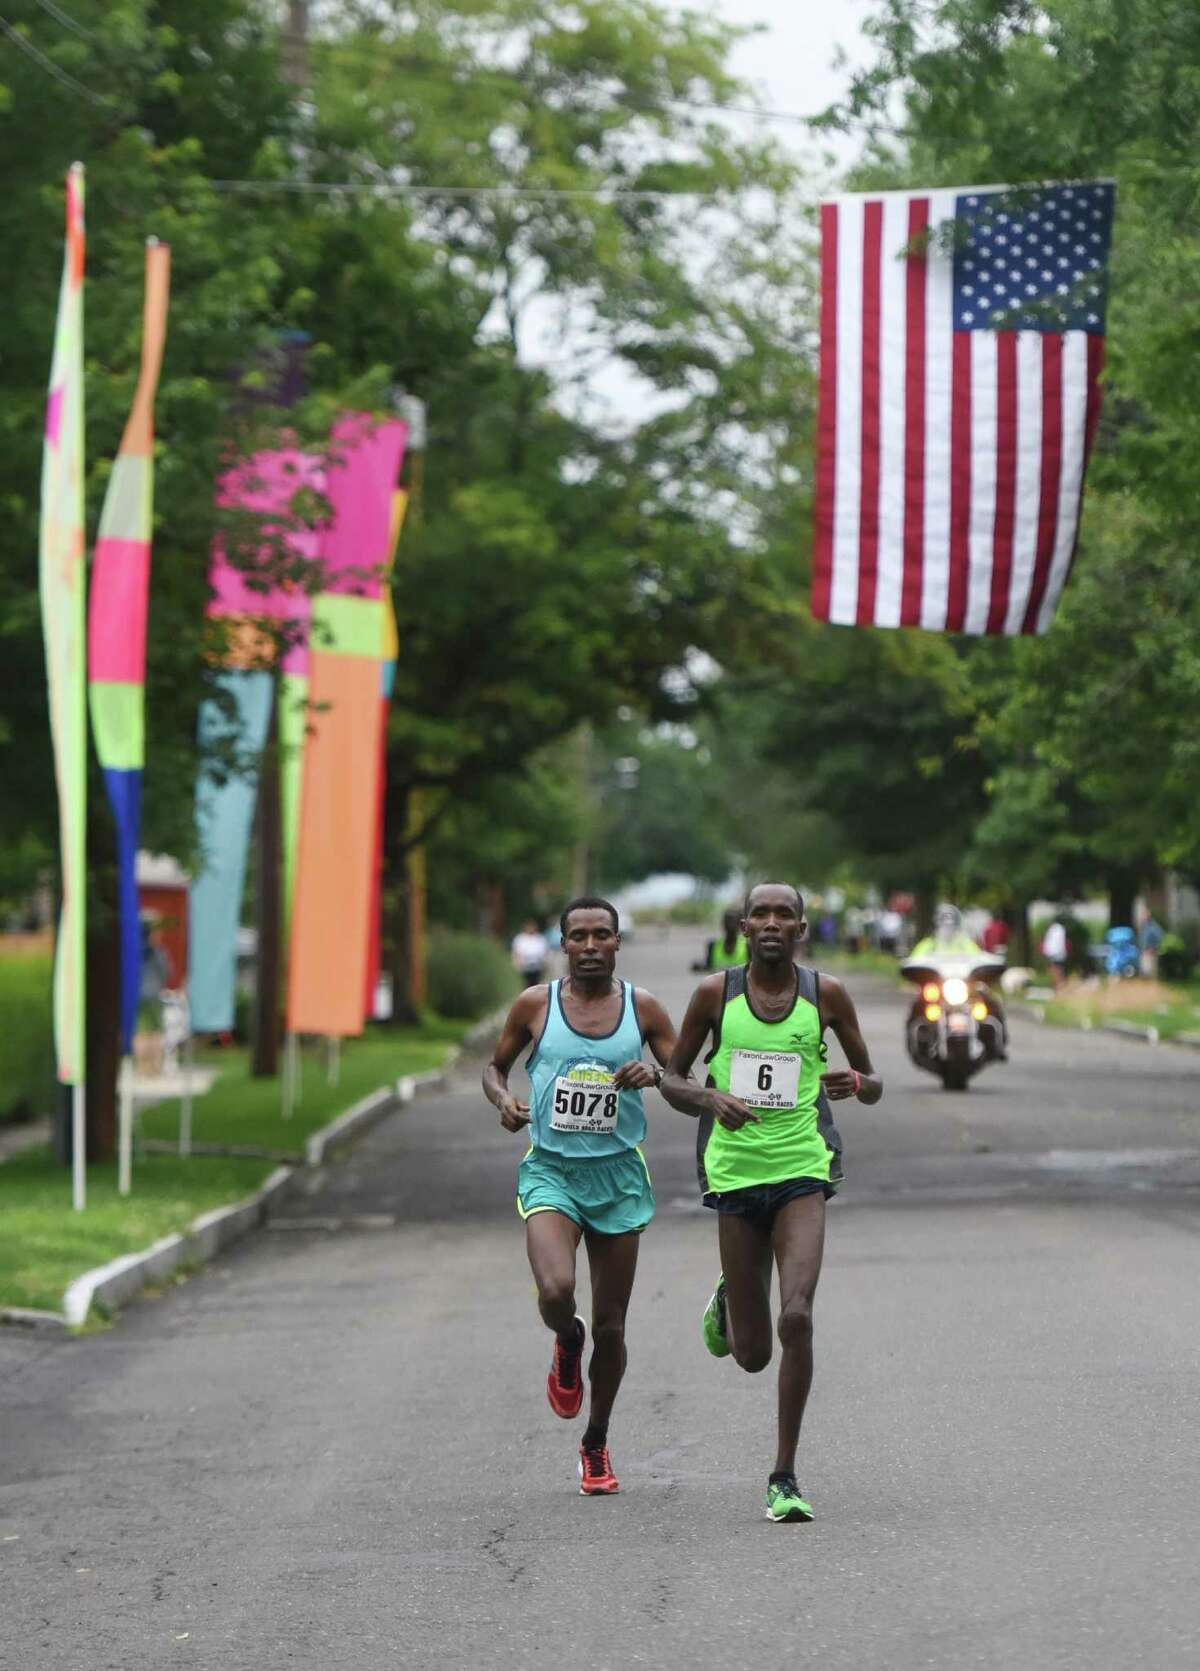 Ethiopia's Gosa Girma Tefera, left, battles Kenya's Josphat Kiptanui Too in the final miles of the Faxon Law Group Fairfield Half Marathon at Jennings Beach in Fairfield, Conn. Sunday, June 28, 2015. Gosa Girma Tefera, of Ethiopia, was the first place overall finisher with a time of 1:04:05 and Josphat Kiptanui Too finished in second with a time of 1:04:09. Etaferahu Temesgen, of Ethiopia, was the first female finisher with a time of 1:14:09.